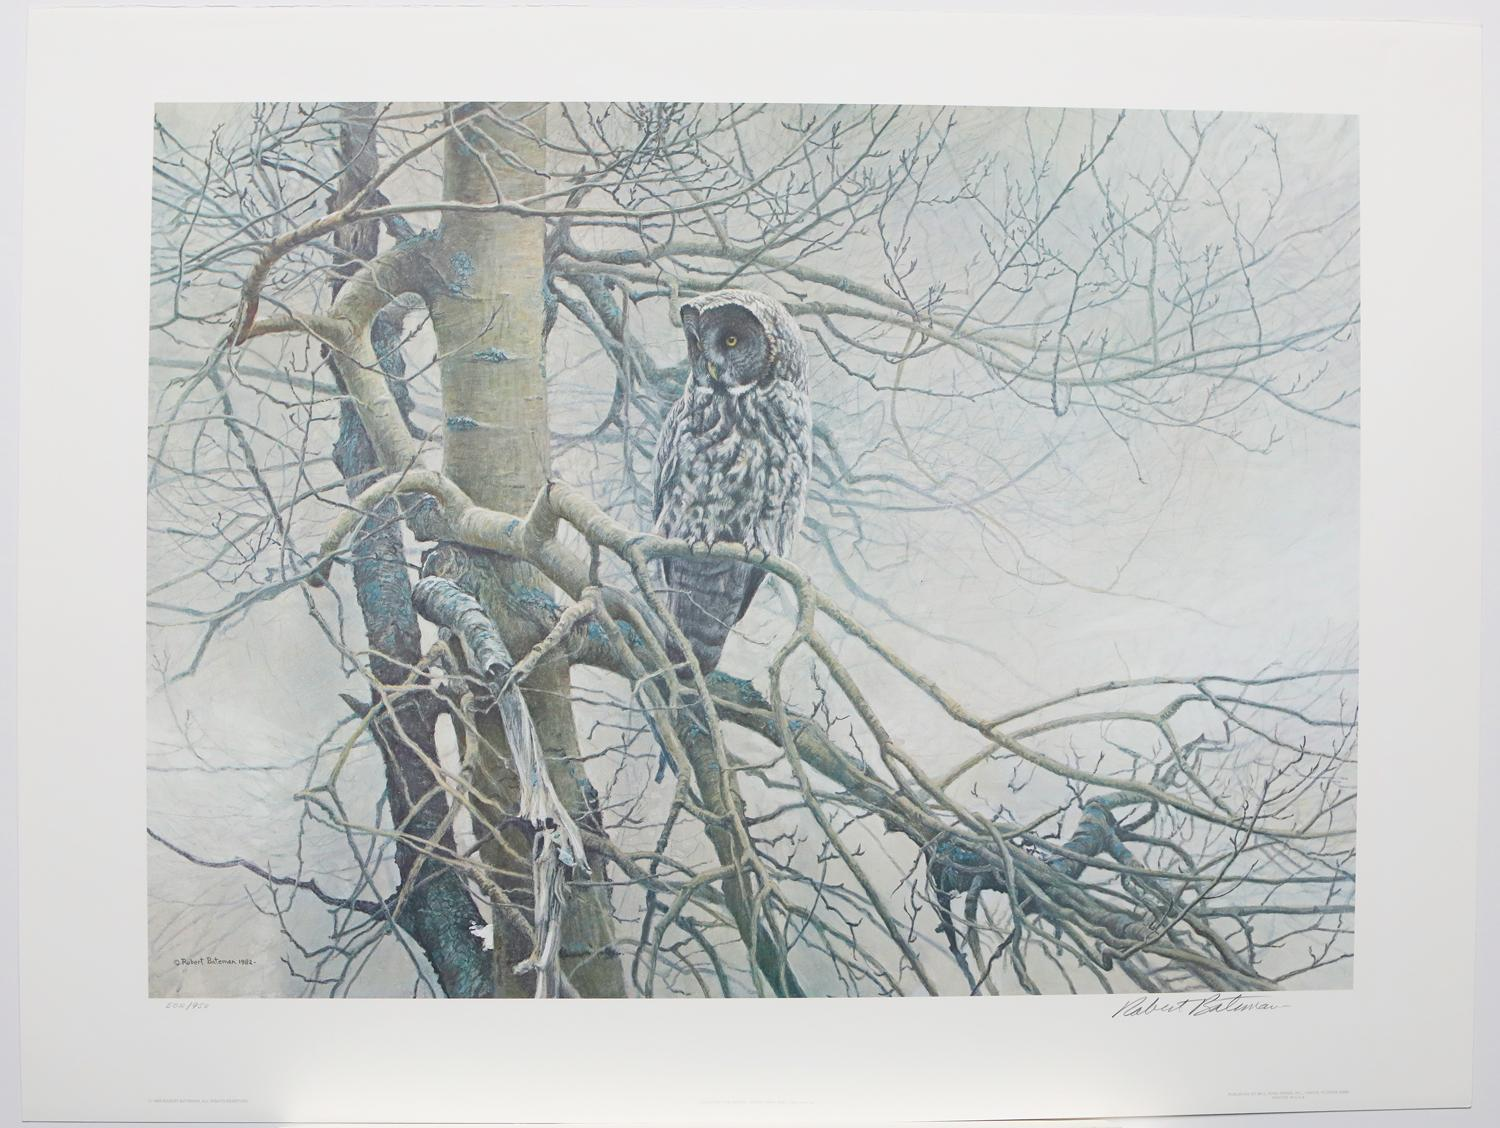 """Robert Bateman's """"Ghost of The North - Great Gray Owl"""" Limited Edition Print Signed and Numbered"""